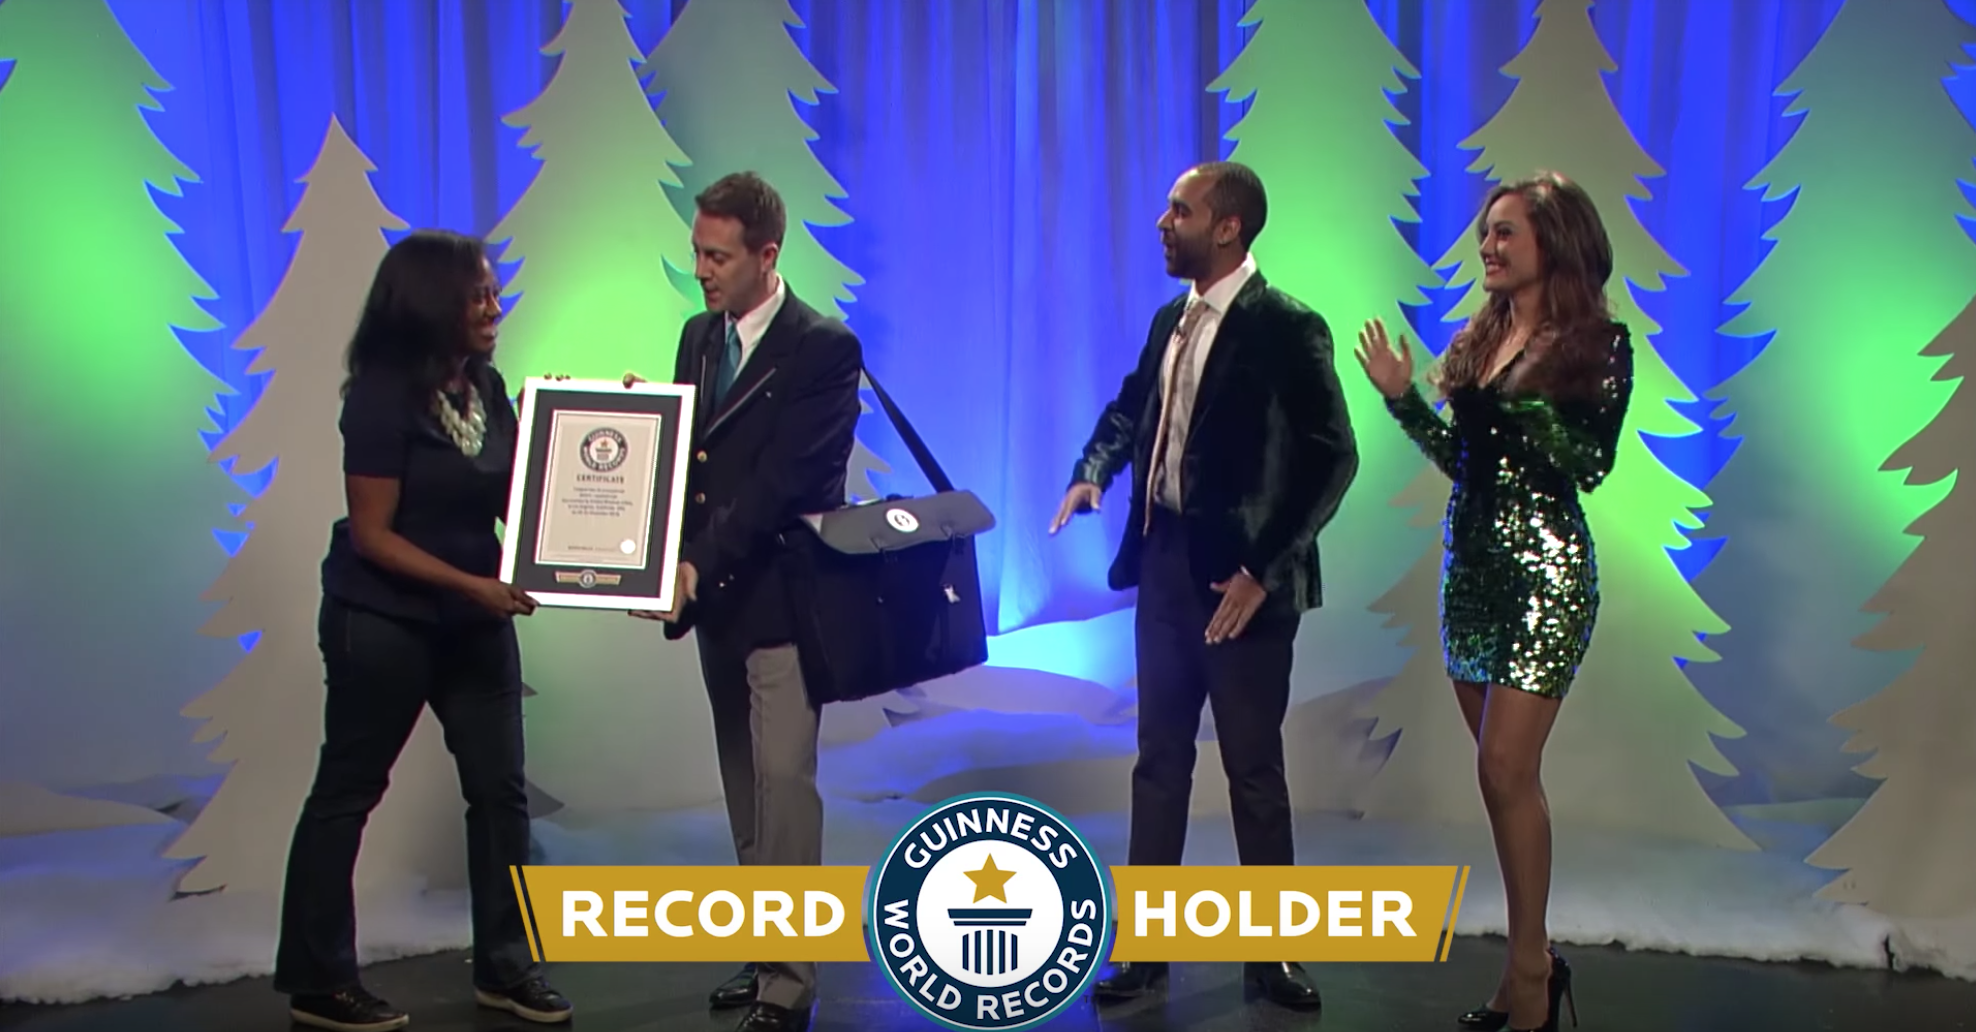 """CRICKET WIRELESS - """"THE TALE OF THE MERRIER CARRIER""""GUINNESS WORLD RECORD-BREAKING24 HOUR LIVE COMMERCIAL2017"""